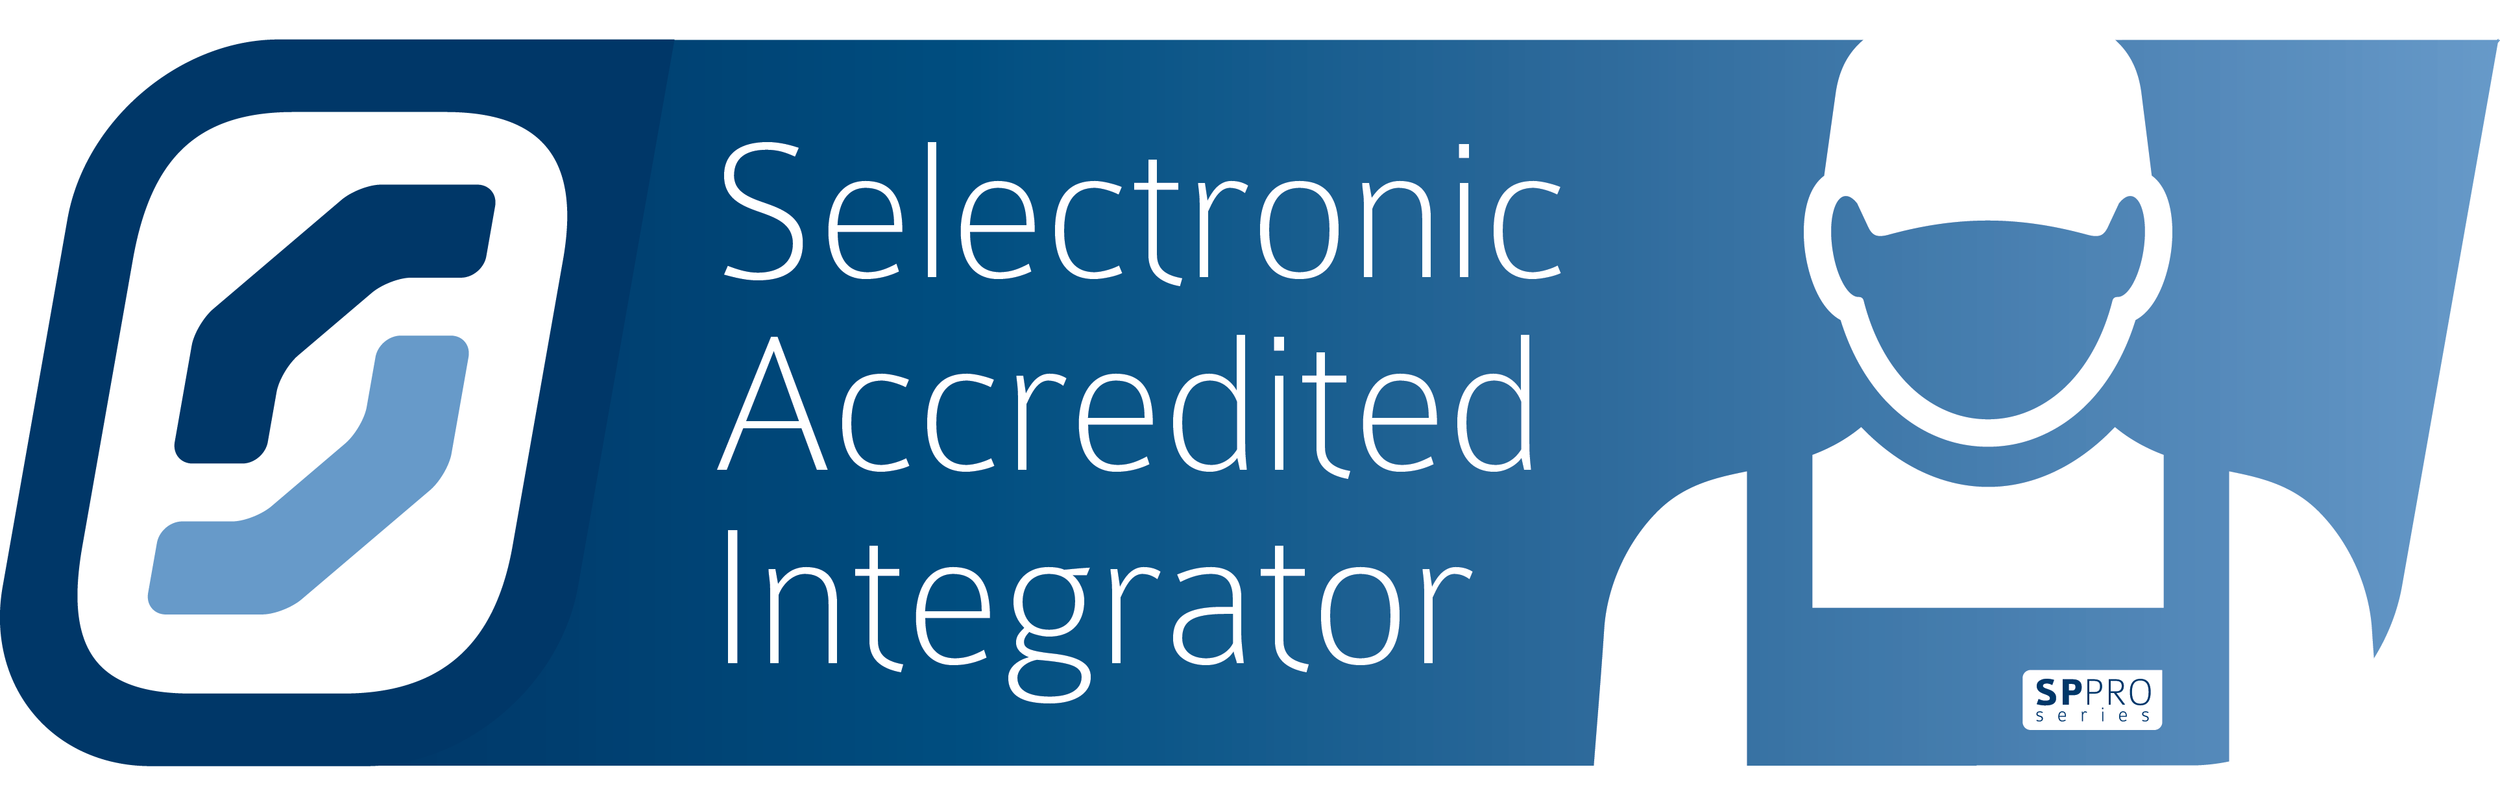 Selectronic Accredited Integrator logo.png